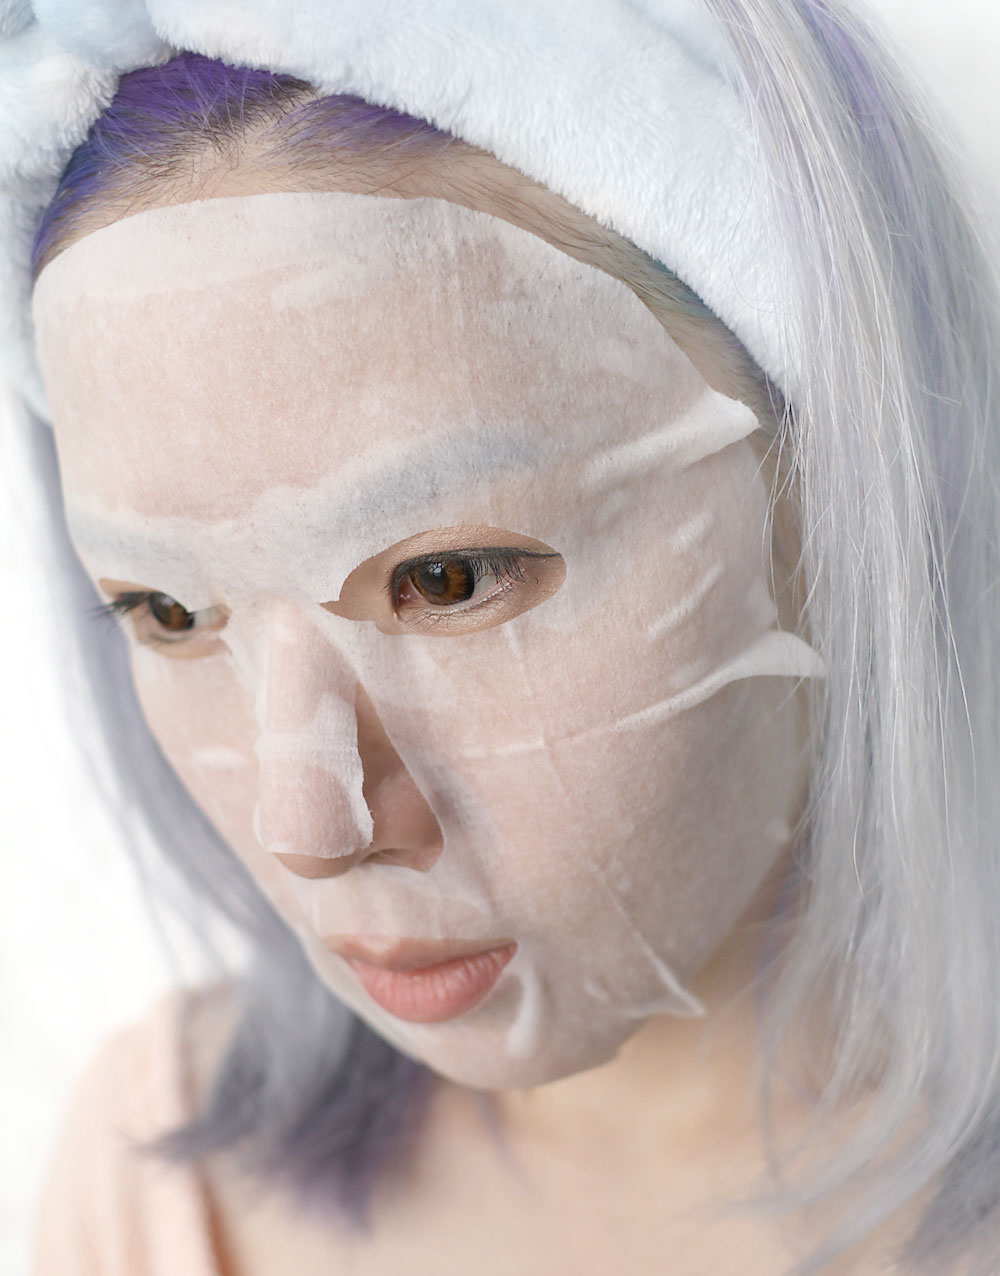 Image of Lululun Face Mask on my face